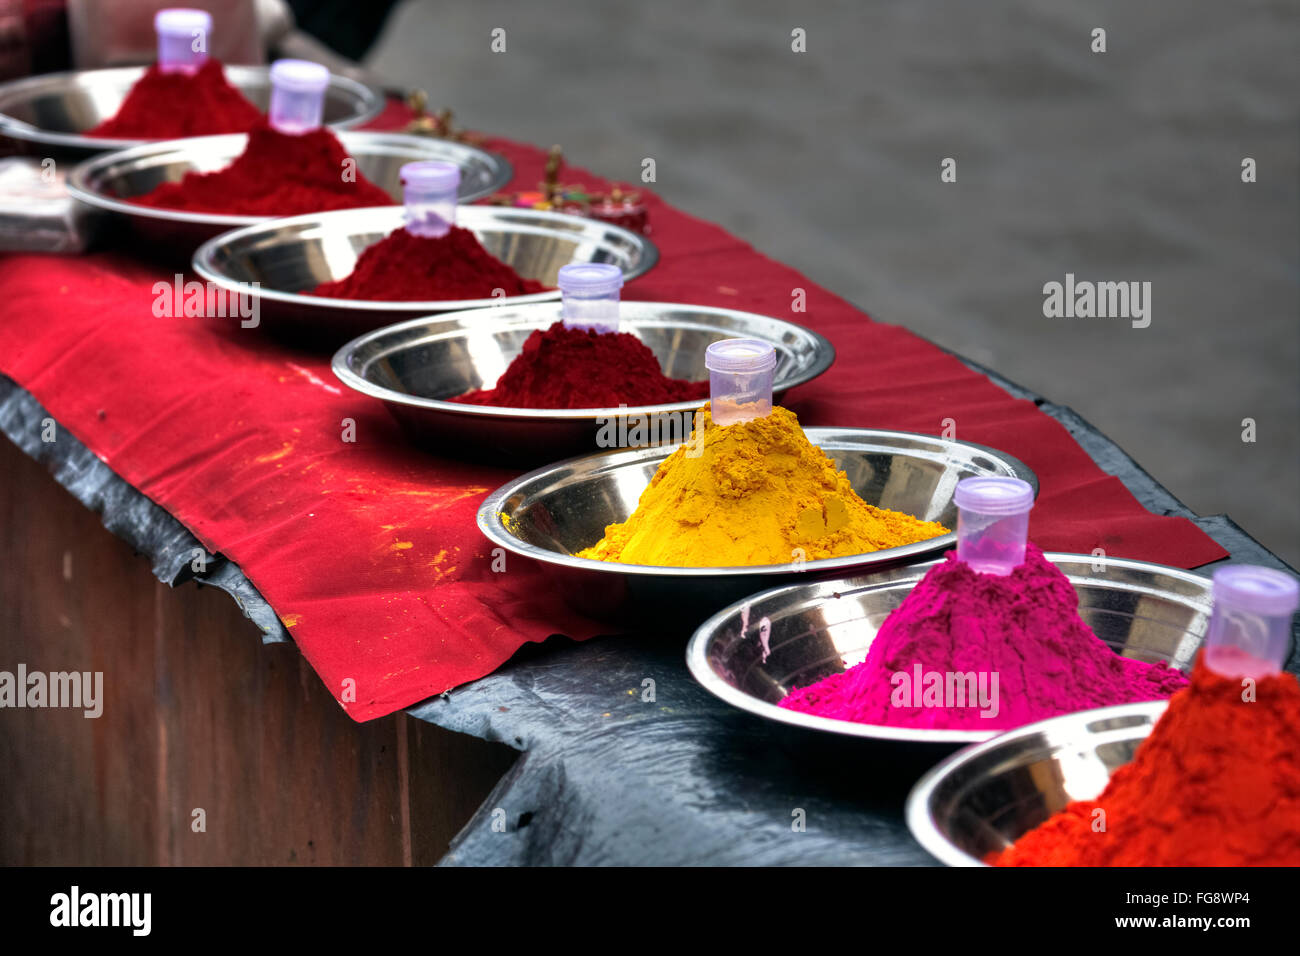 Holi colours, powder, India, Asia - Stock Image